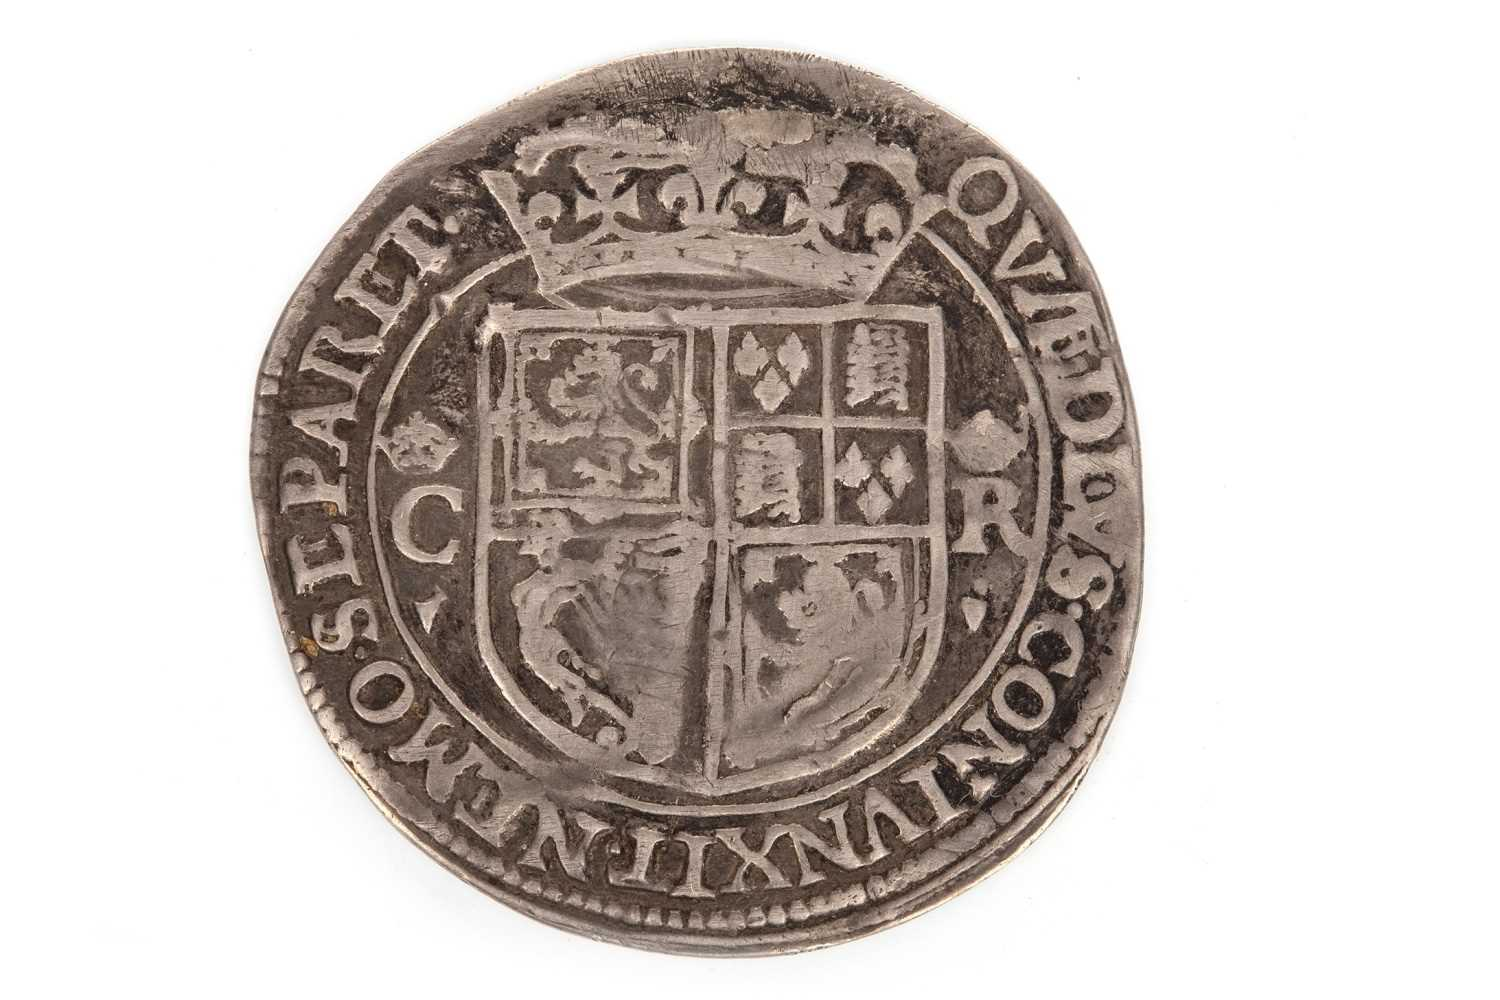 Lot 603-A SCOTTISH SILVER CHARLES I 12 SHILLING COIN